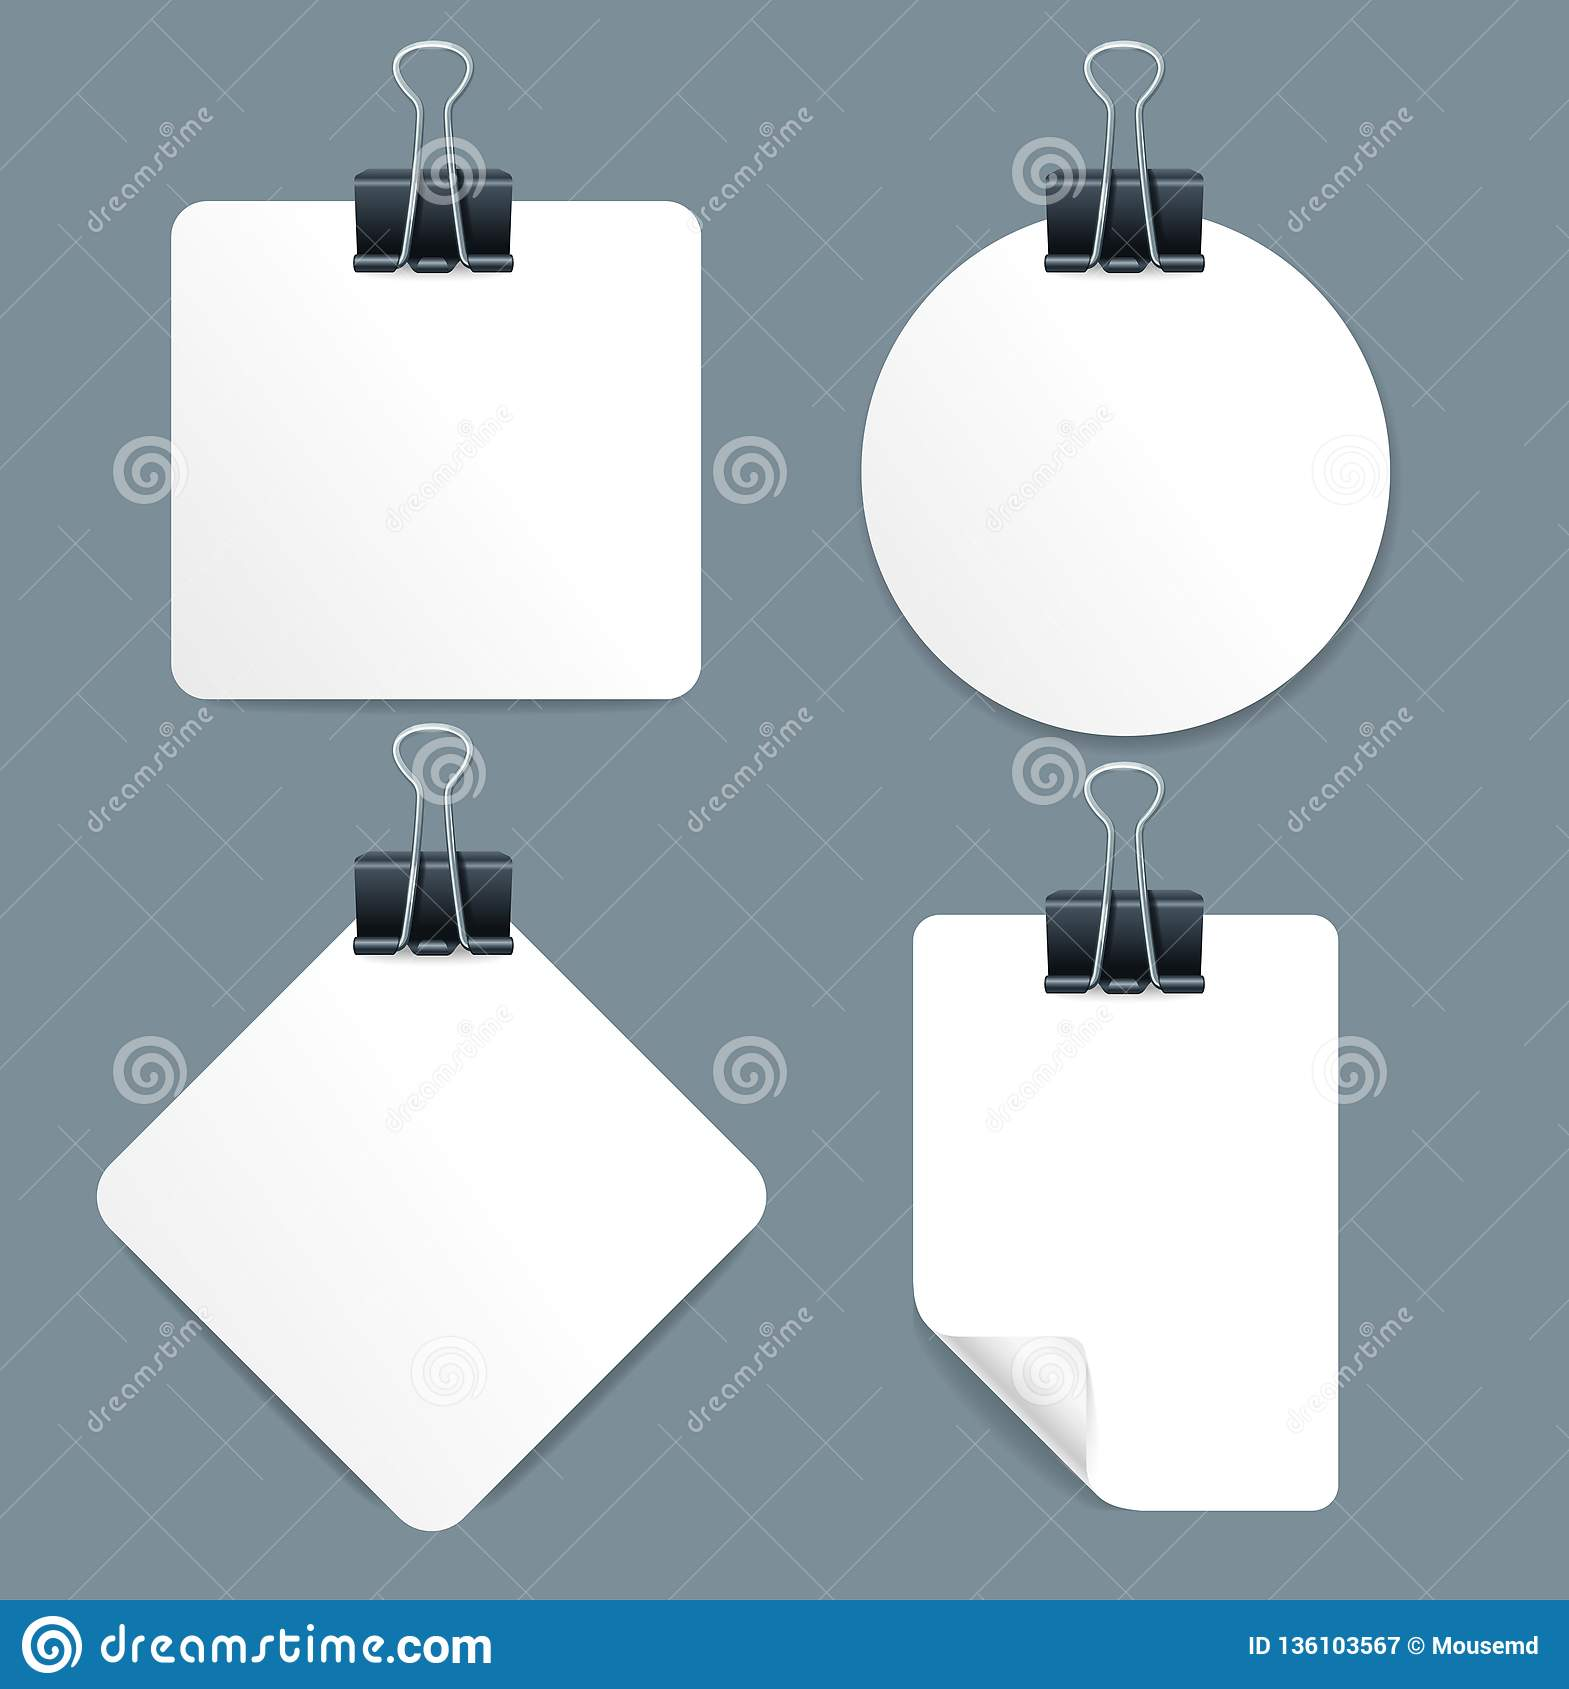 Realistic 3d Detailed Paper Sheets and Metal Pin Binder Set. Vector